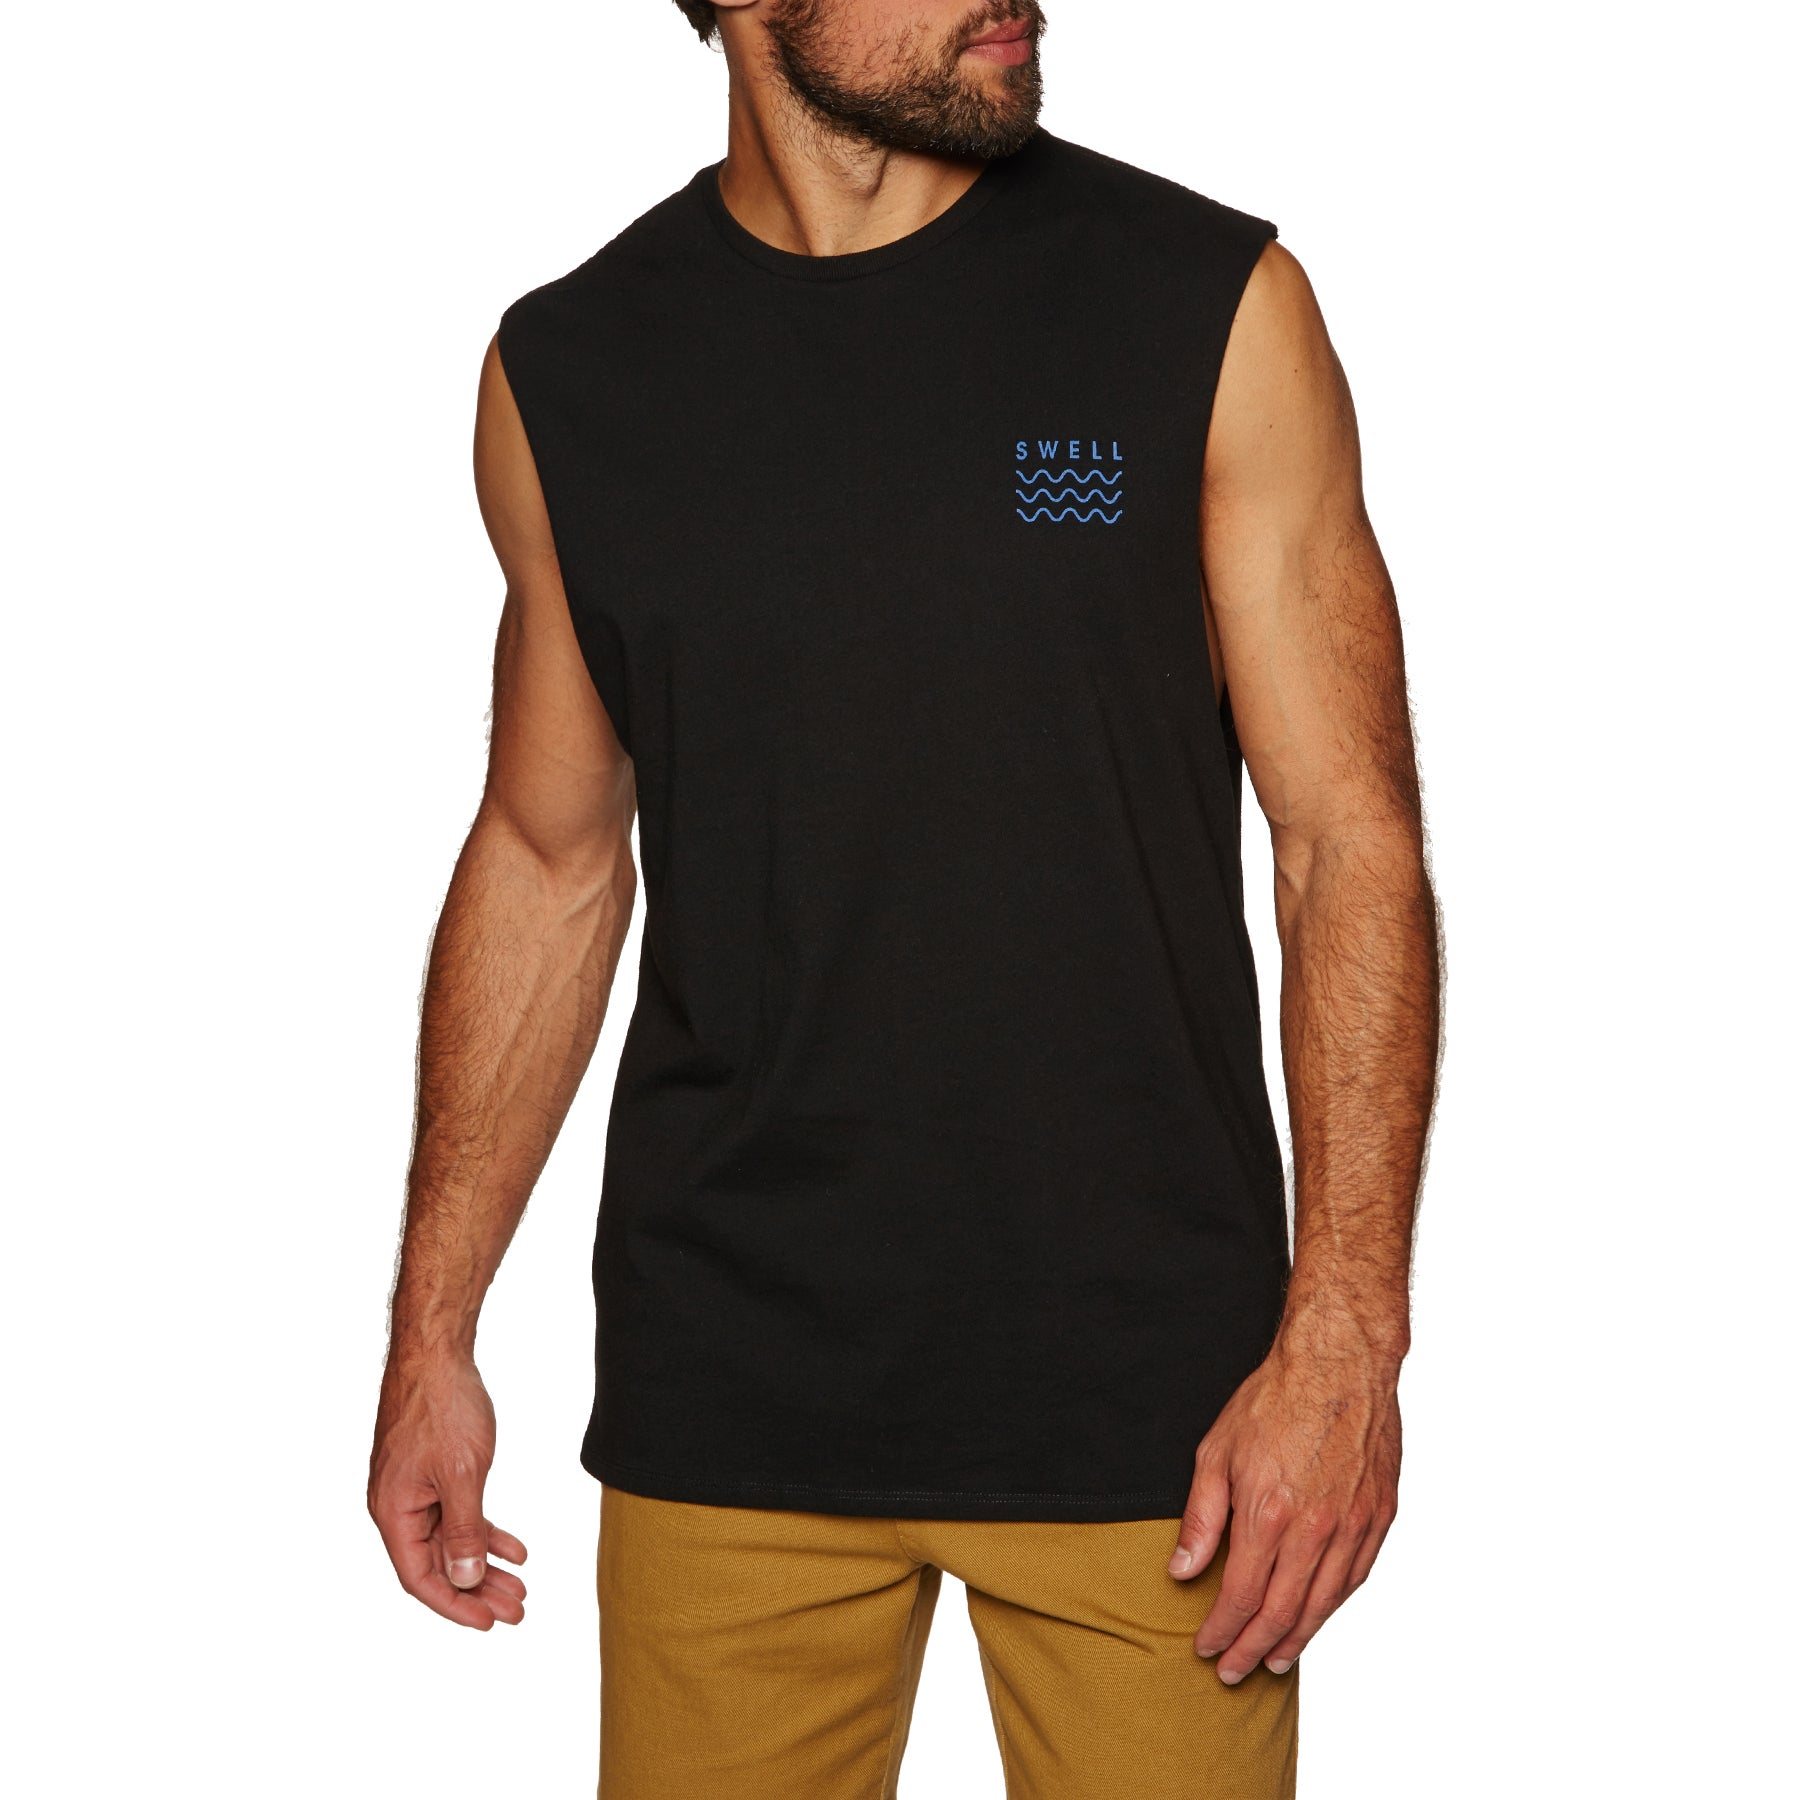 SWELL Muscle Tank Vest